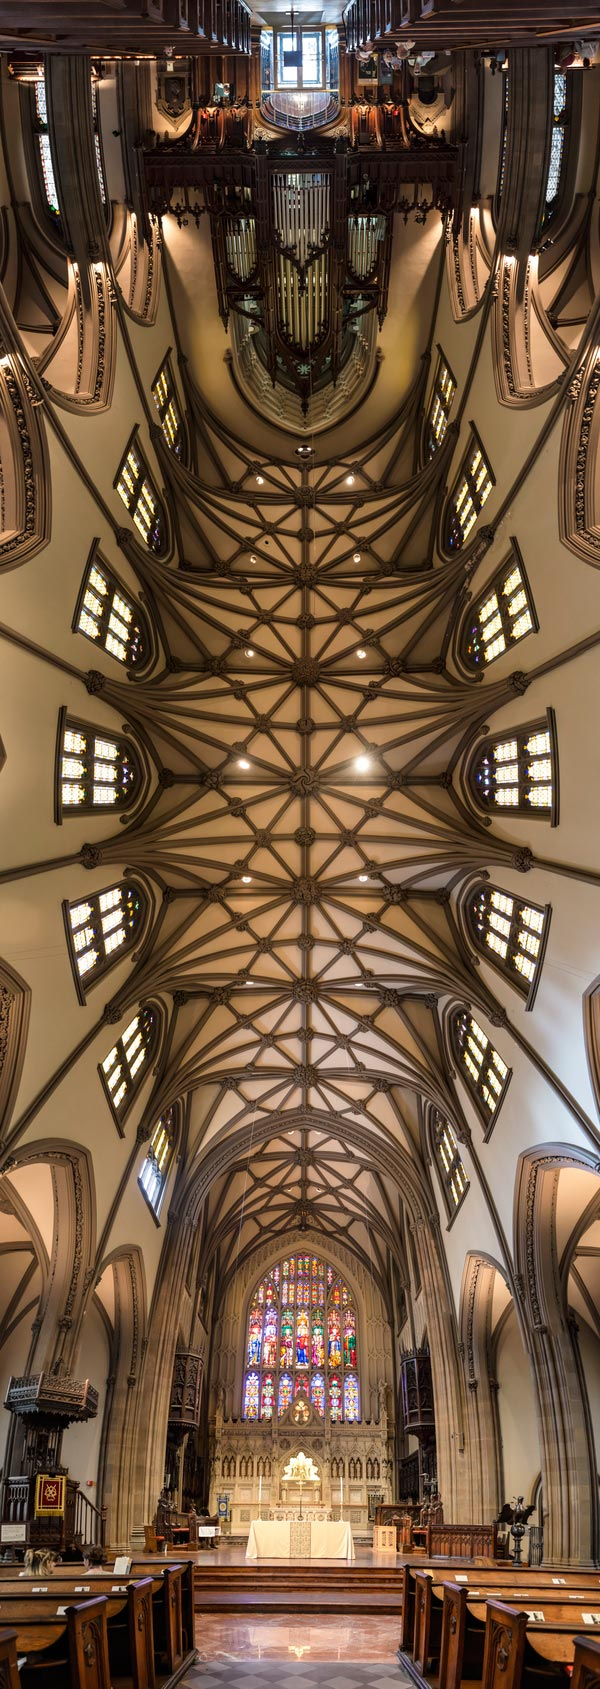 vertical panoramas of church ceilings 3 Amazing Vertical Panoramas of Church Ceilings